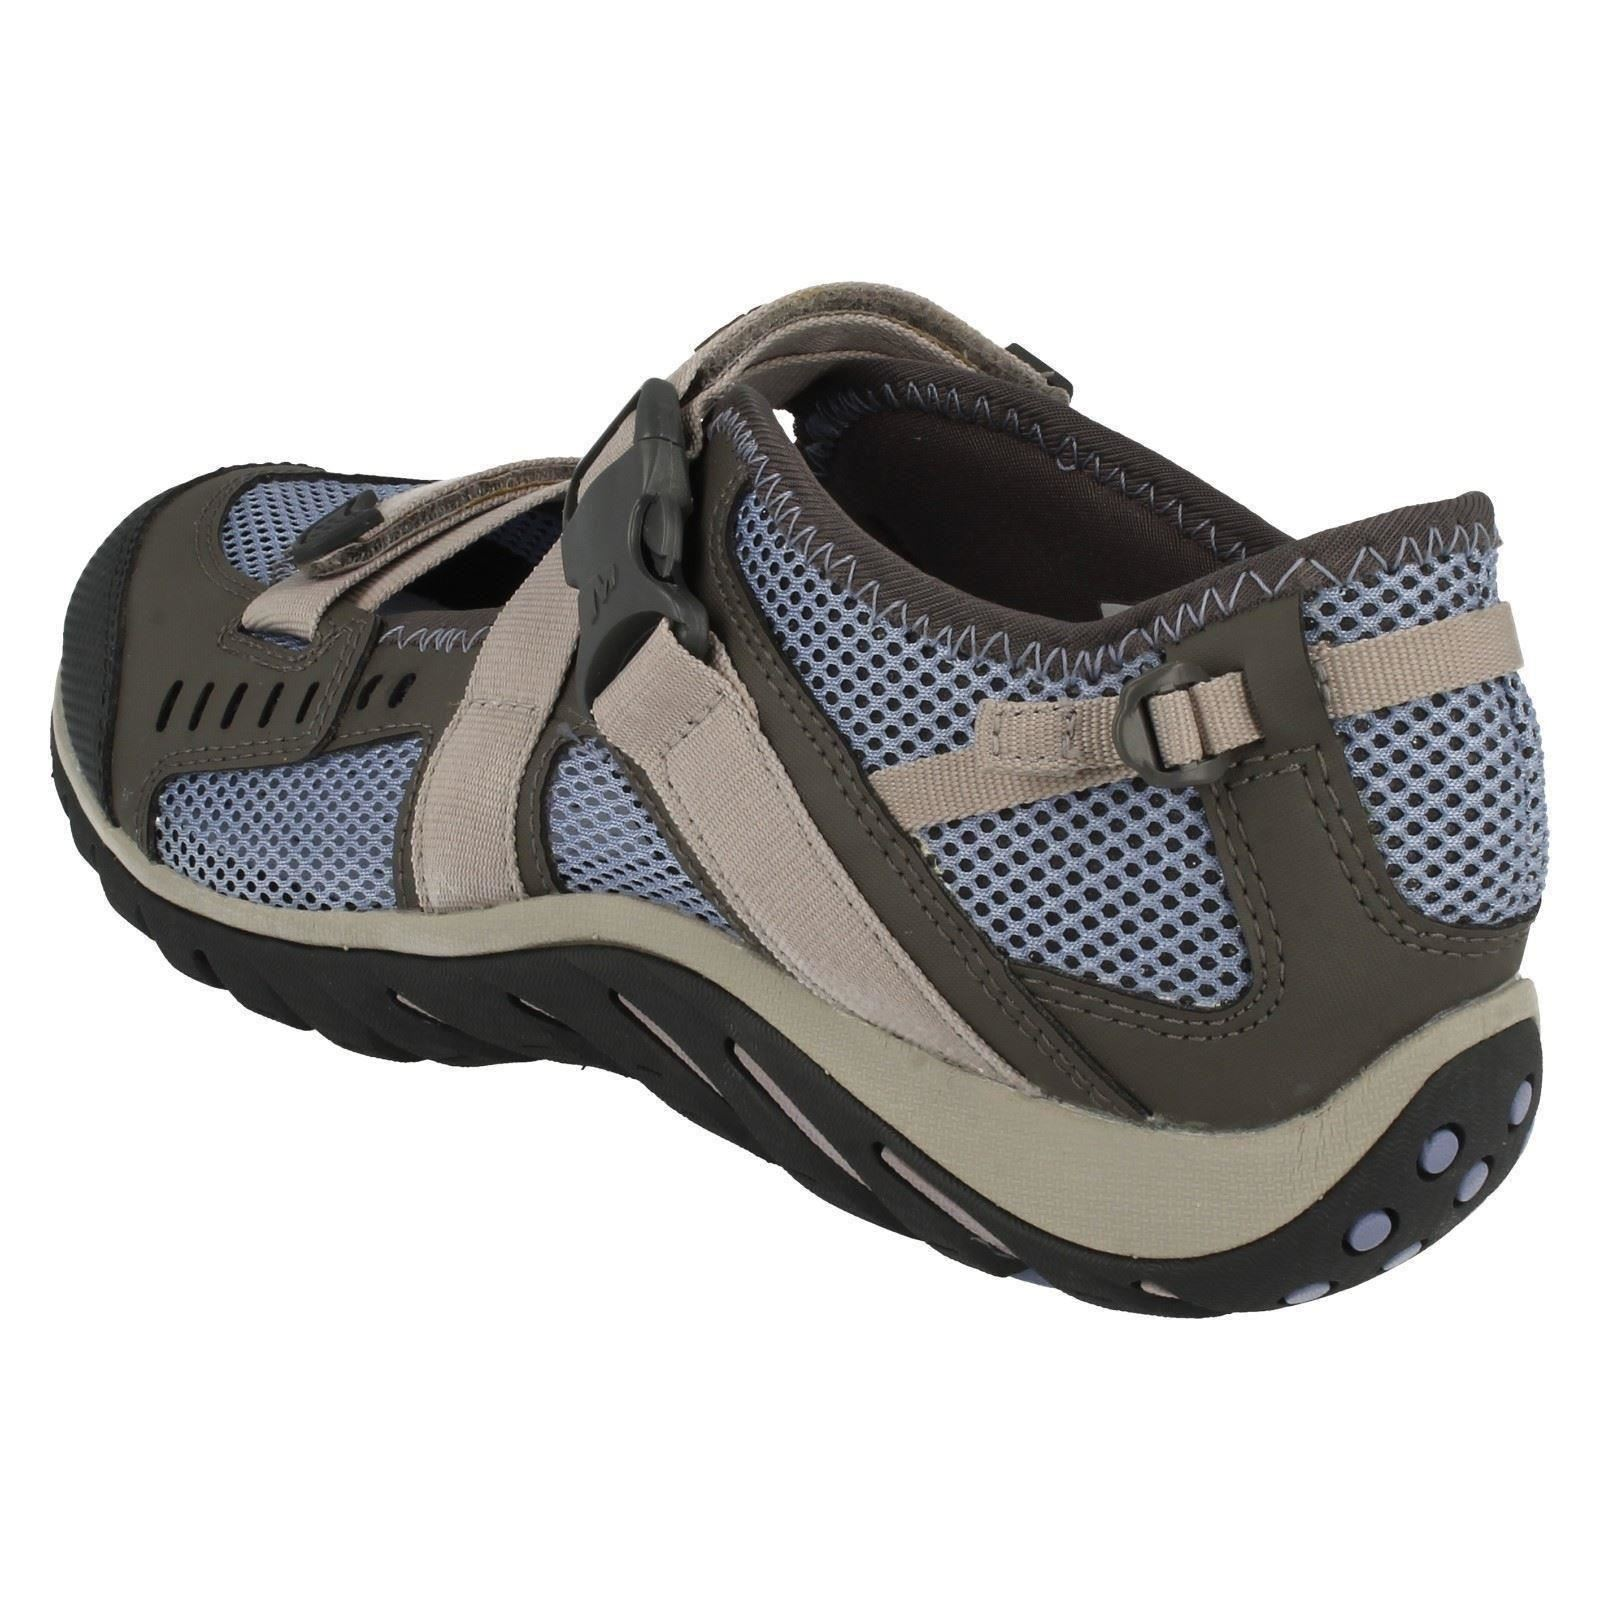 Ladies-Merrell-Buckle-Fastened-Casual-Shoes-Waterpro-Crystal-J82284 thumbnail 4